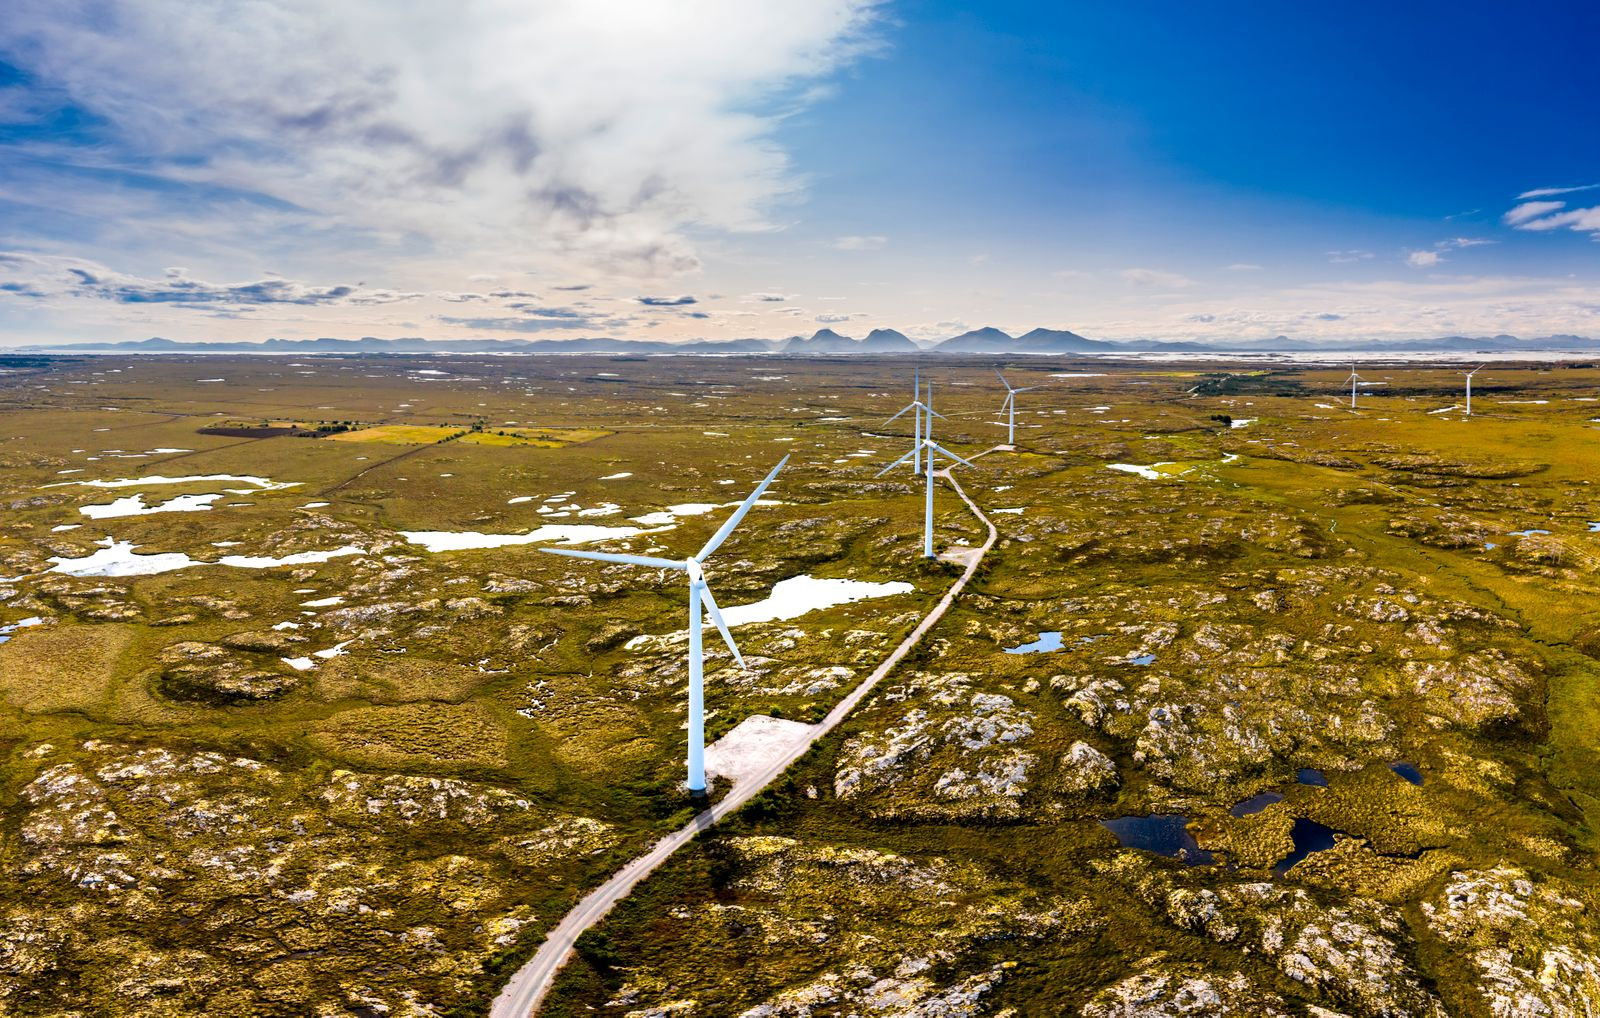 Wind generators in the arctic tundra. Norway, Smola island. Aerial view.